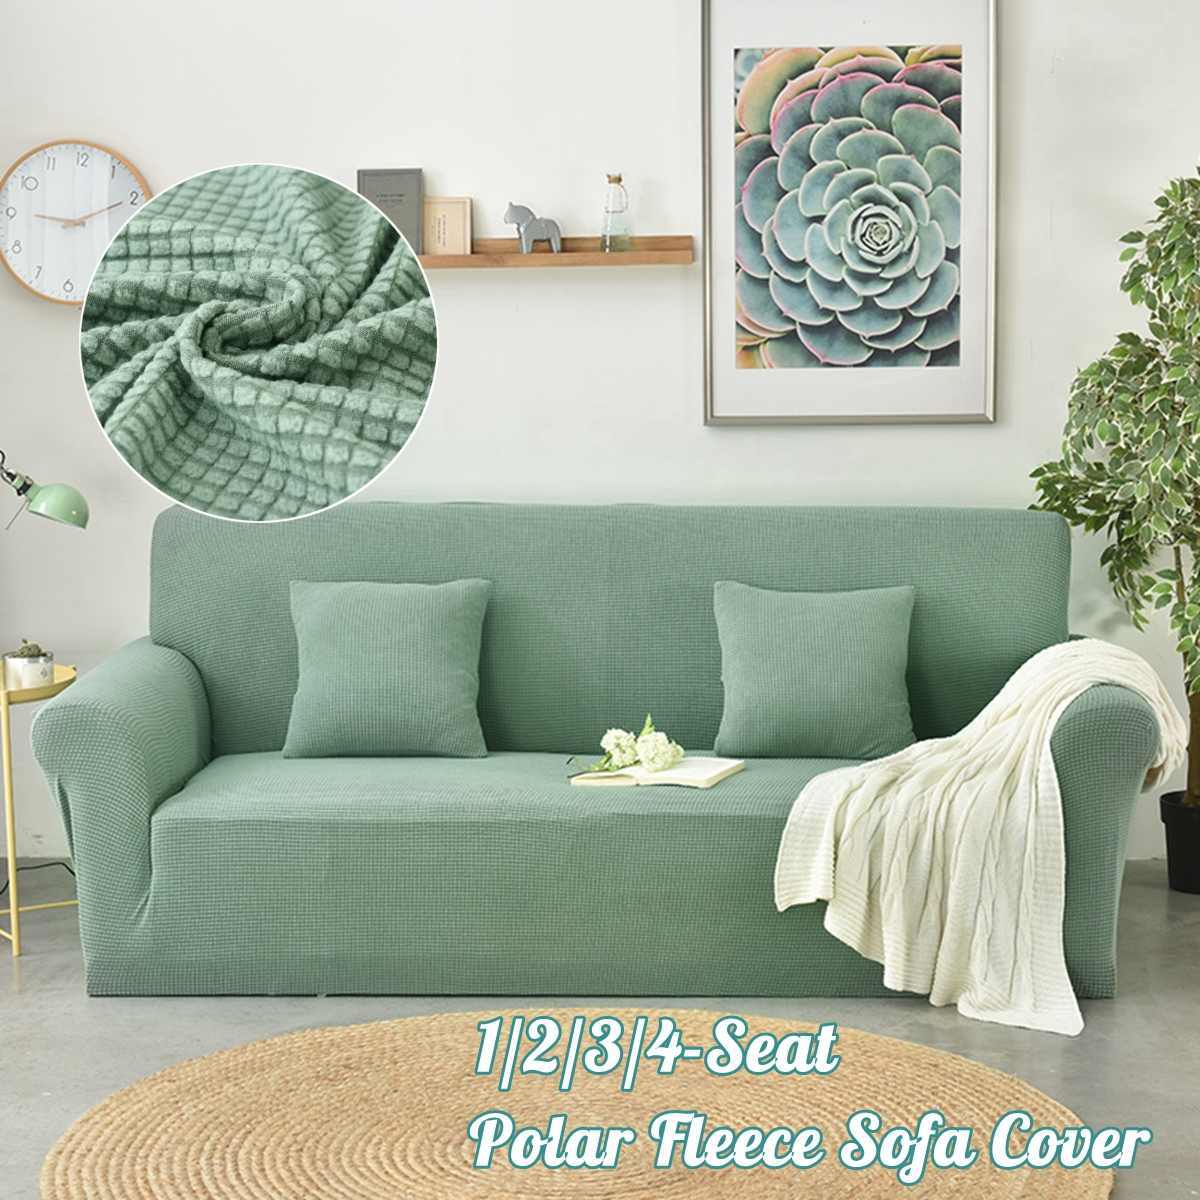 Polar Fleece Slipcover Sofa Solid Color Couch Cover Elastic full sofa Cover 1/2/3/4 seater Stretch Pillow Case Chair Covers Pine